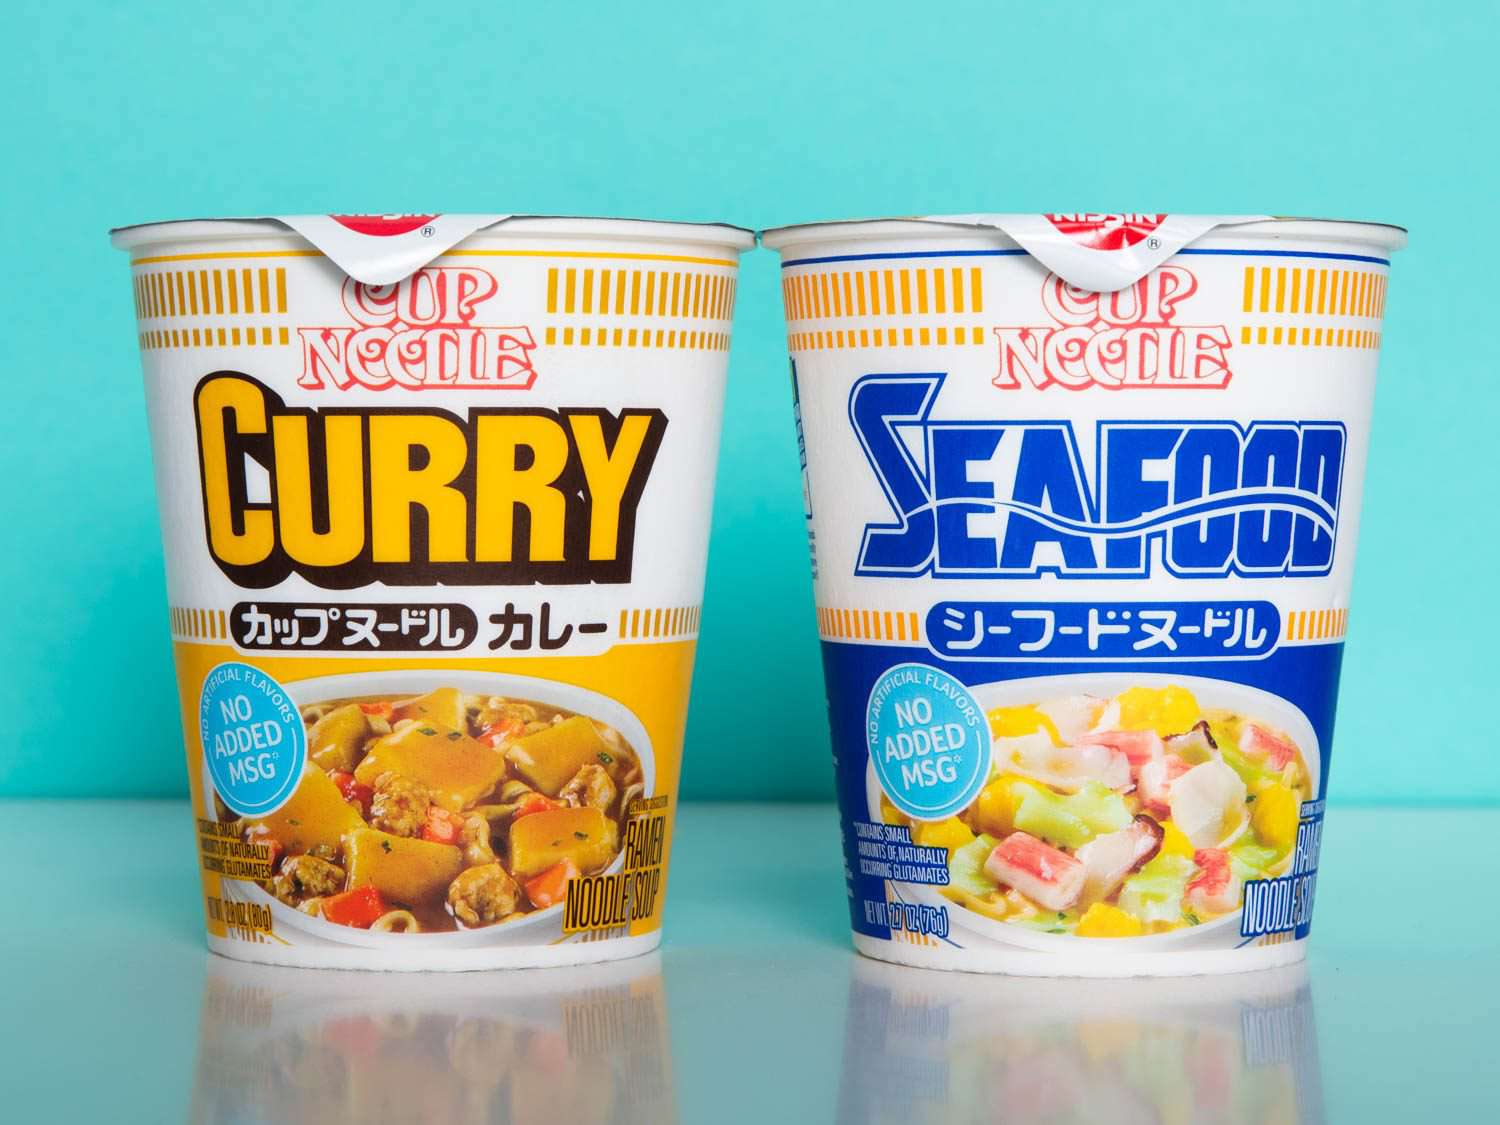 American Curry and Seafood Cup Noodles side by side